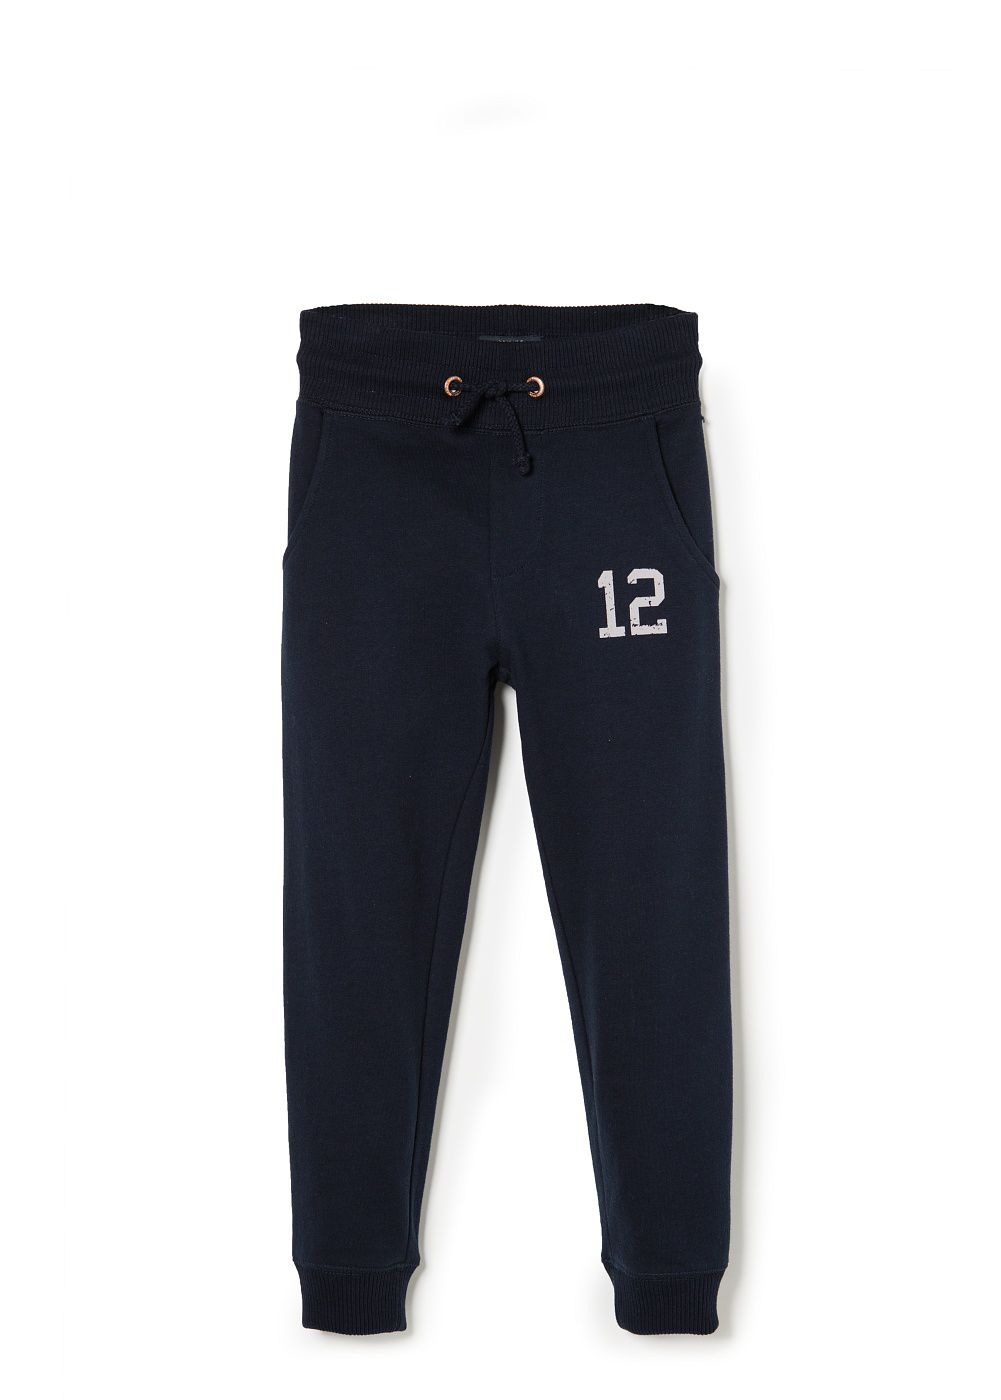 Boys college jogging trousers